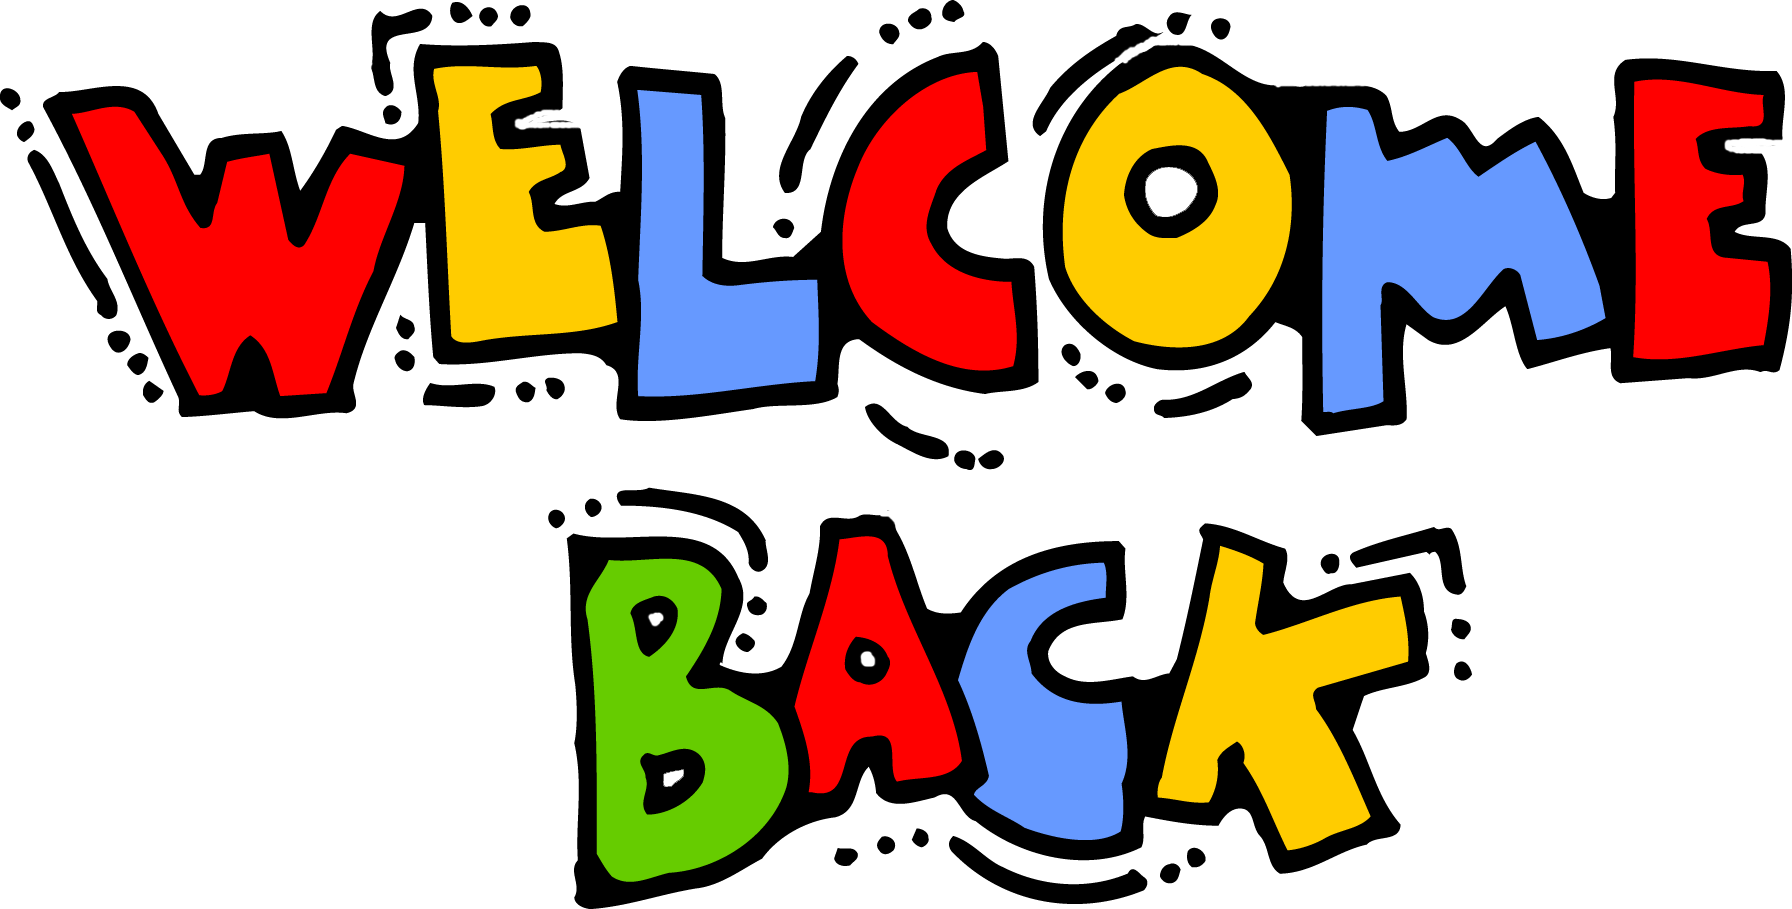 welcome back free clipart - Clipground